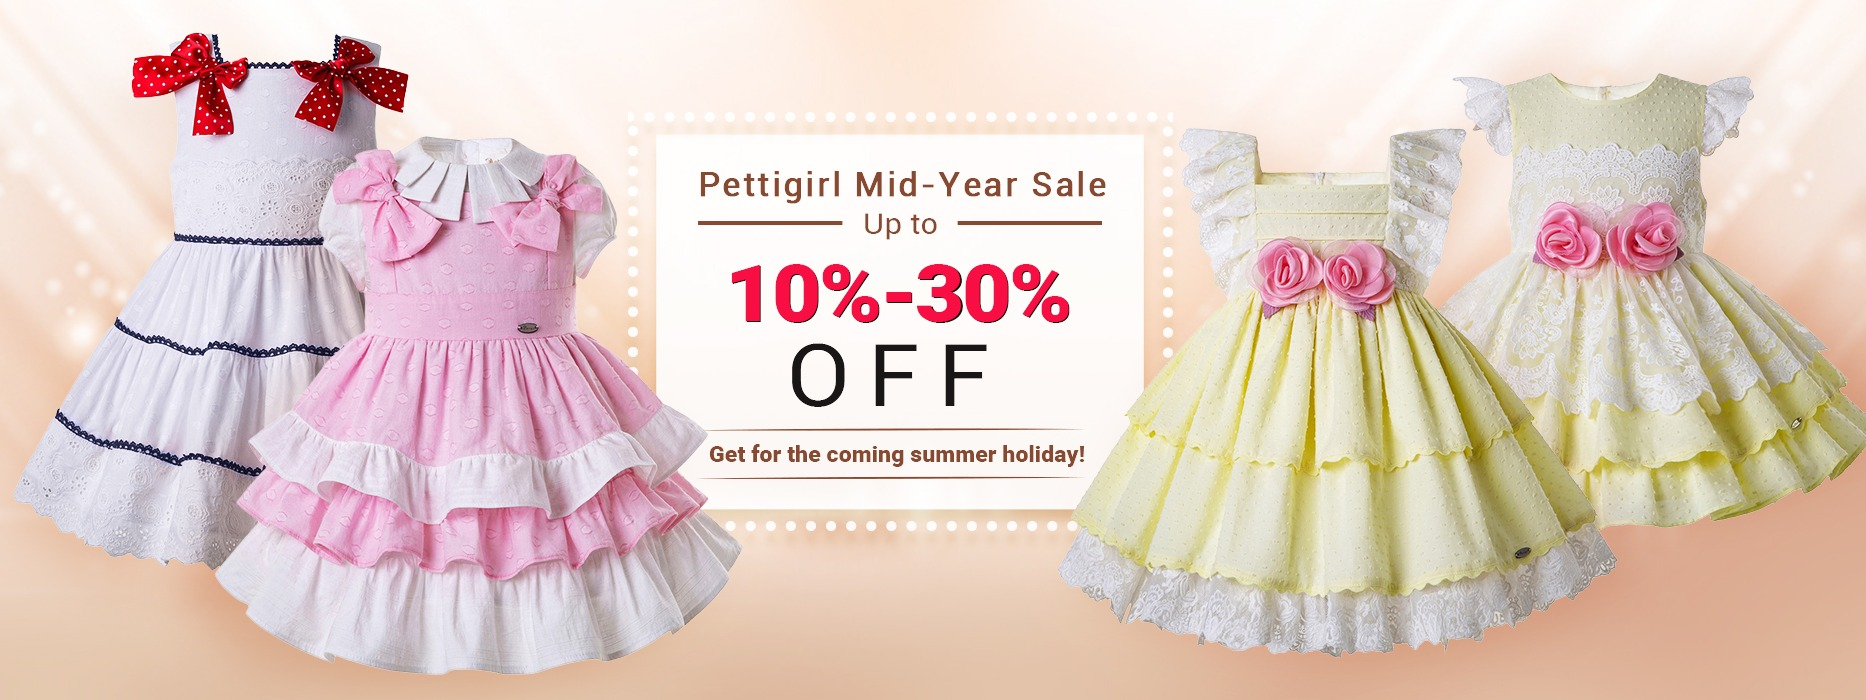 0aa71e2bbbcb Pettigirl Summer Yellow Smocked Party Dresses For Toddlers Round Collar Baby  Smocked Easter Girls Dress